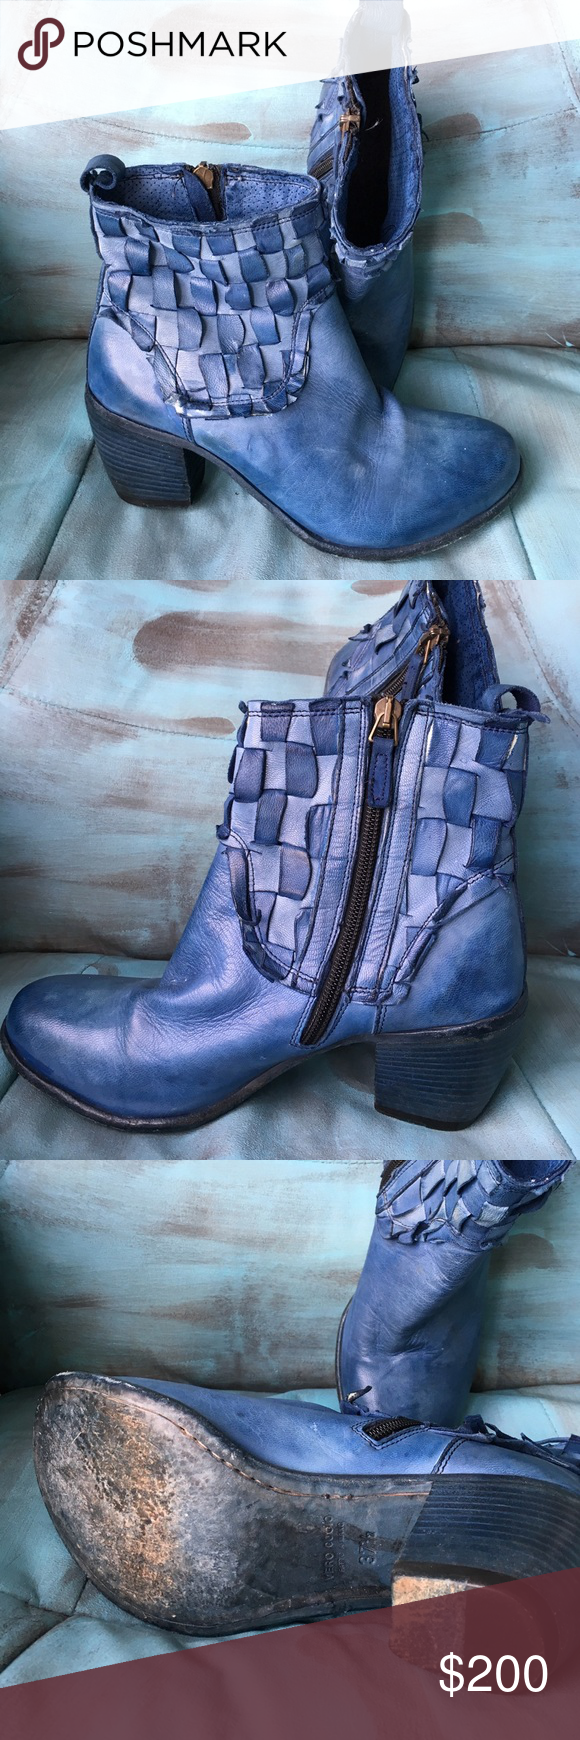 Gidigio BootiesShoes Beautiful Booties Blue Ankle y0wNOm8nv